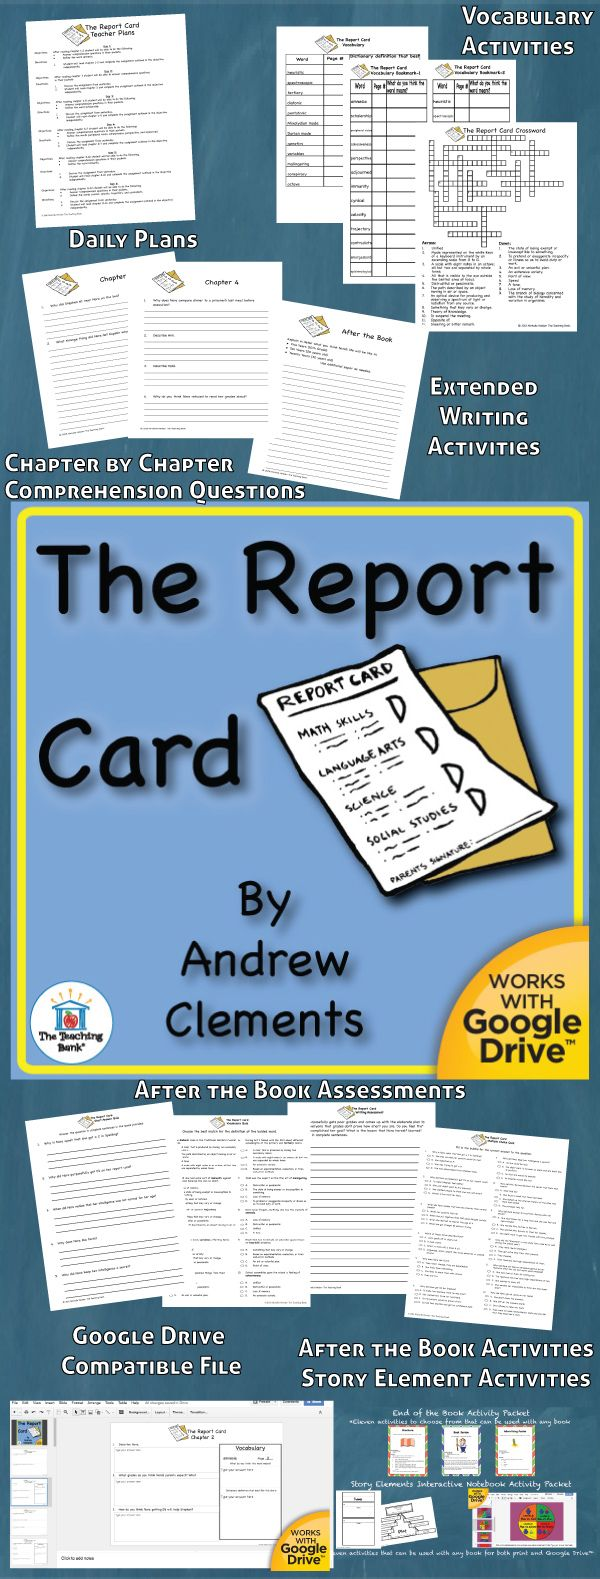 The Report Card Novel Study is a Common Core Standard aligned book unit to be used with The Report Card by Andrew Clements. This download contains both a printable format as well as a Google Drive™ compatible format.